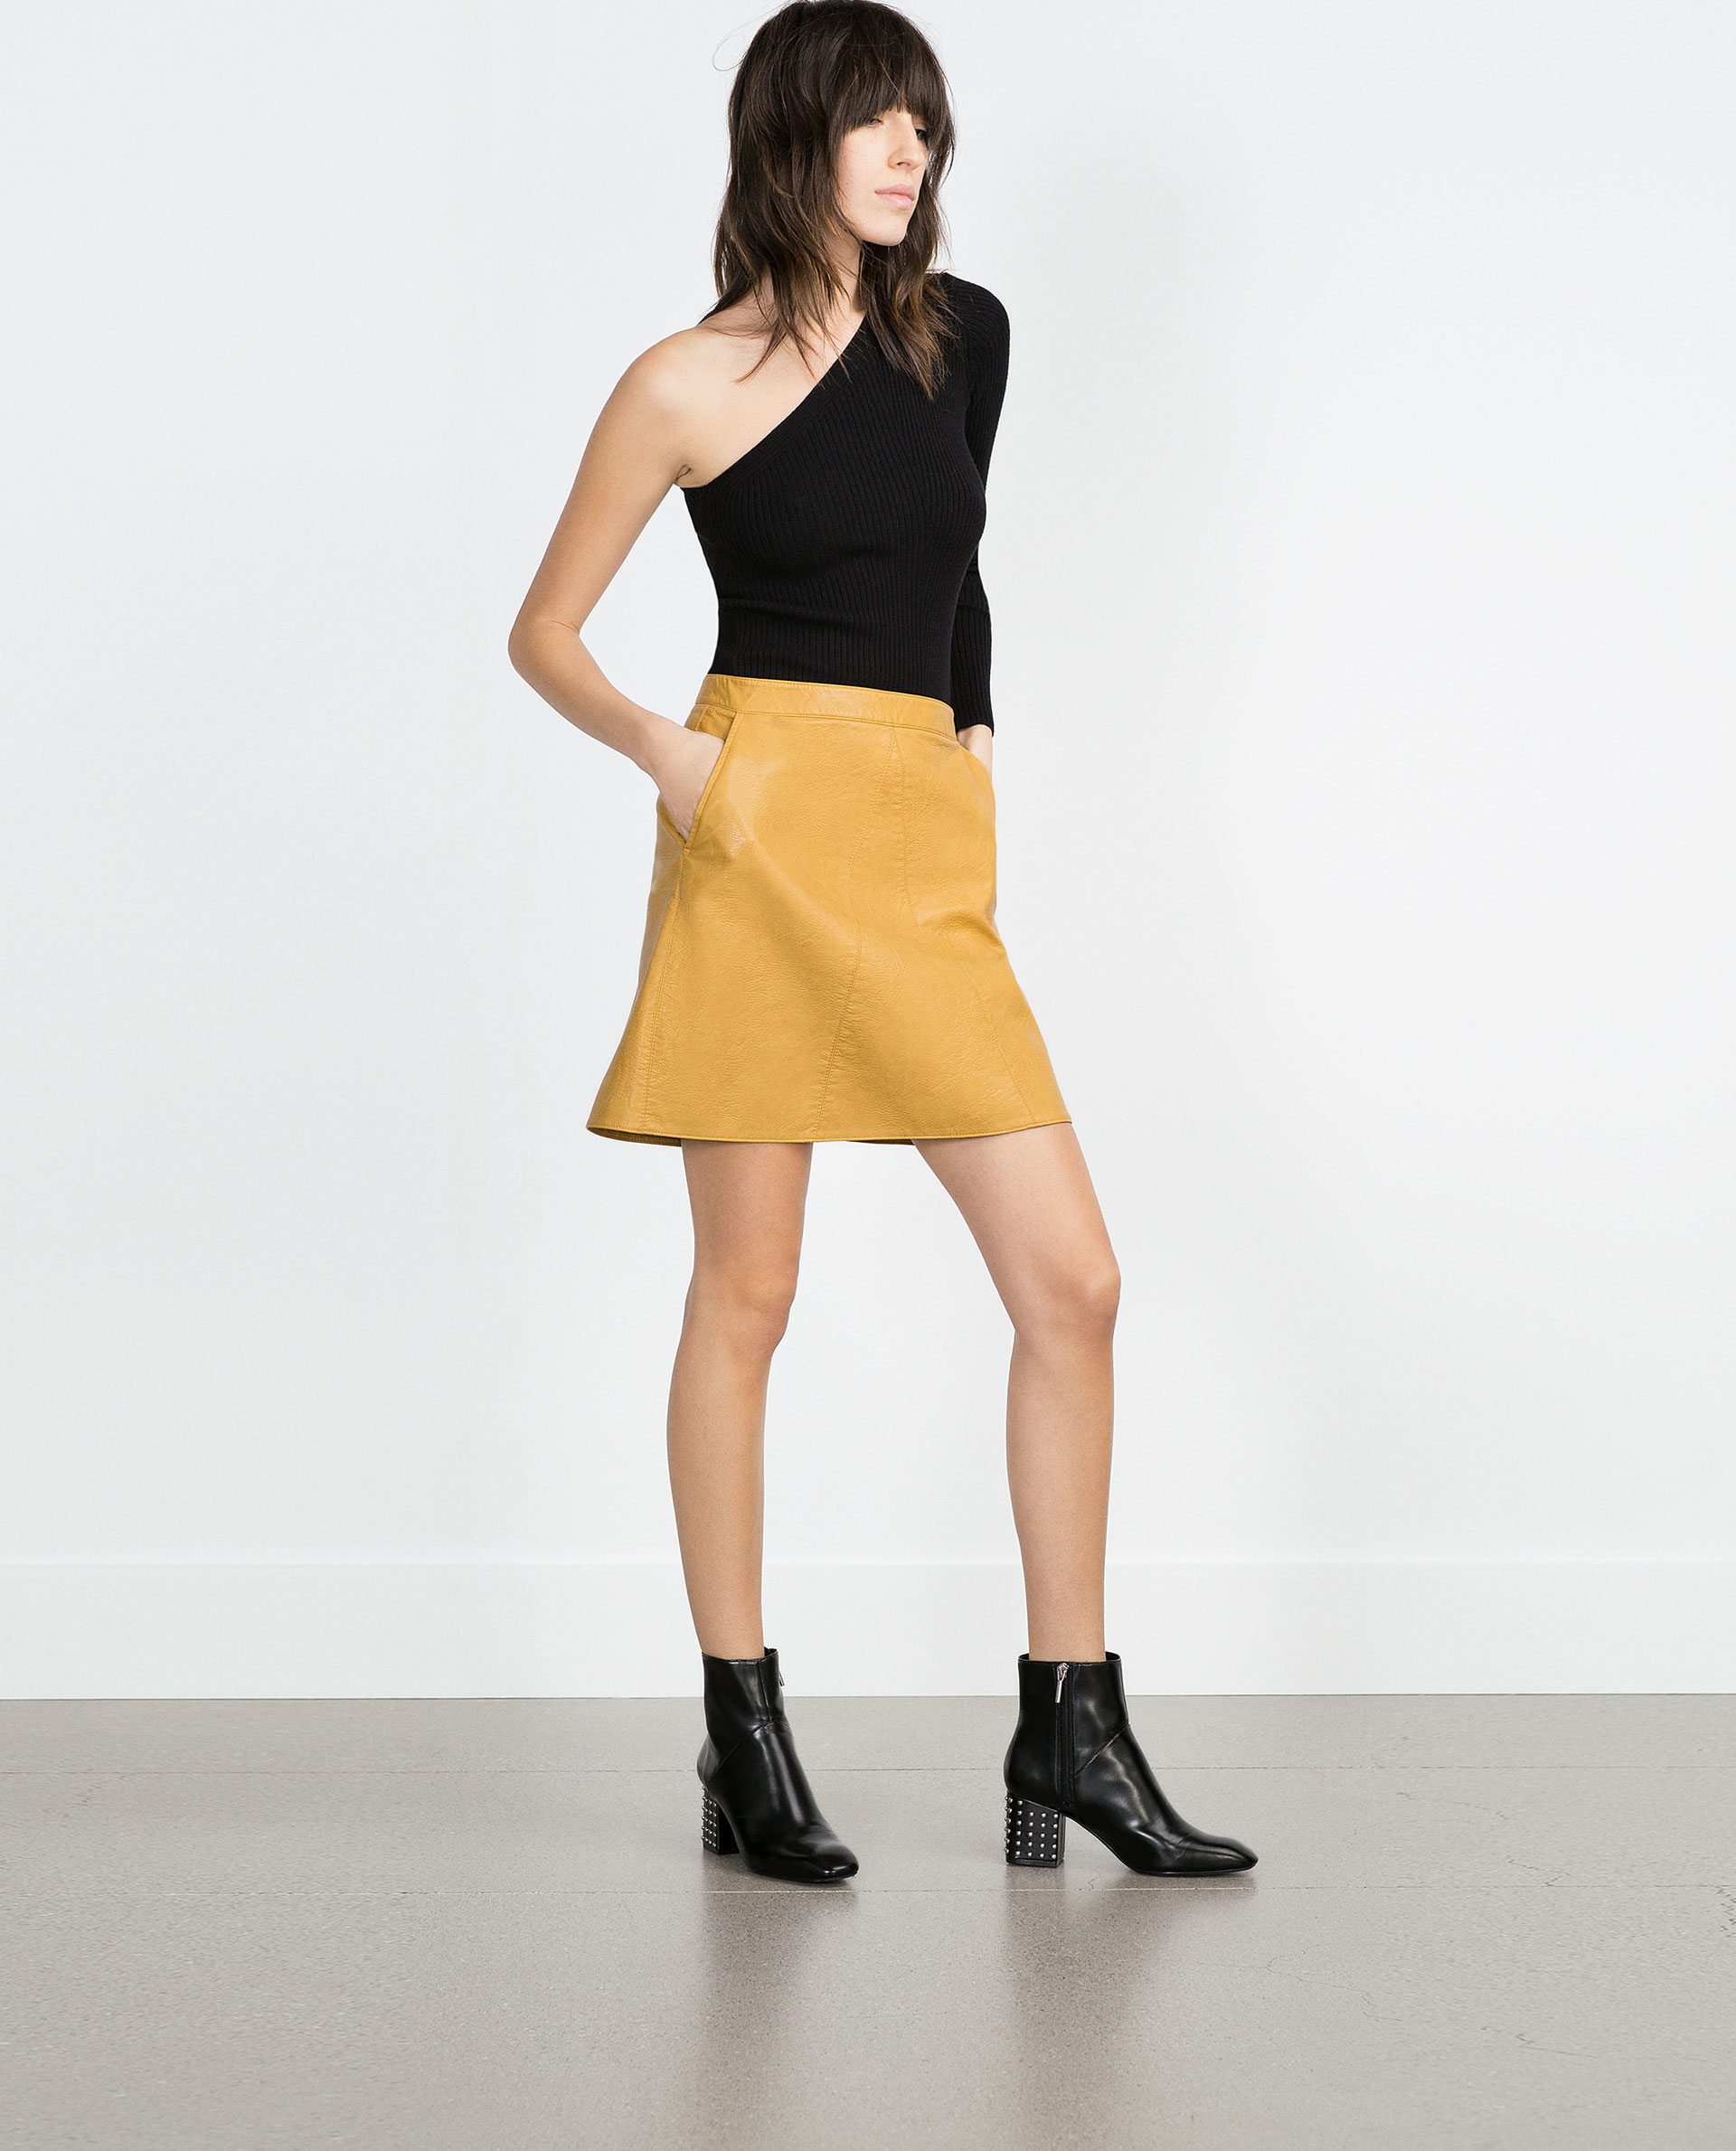 Yellow Leather Skirt - Dress Ala